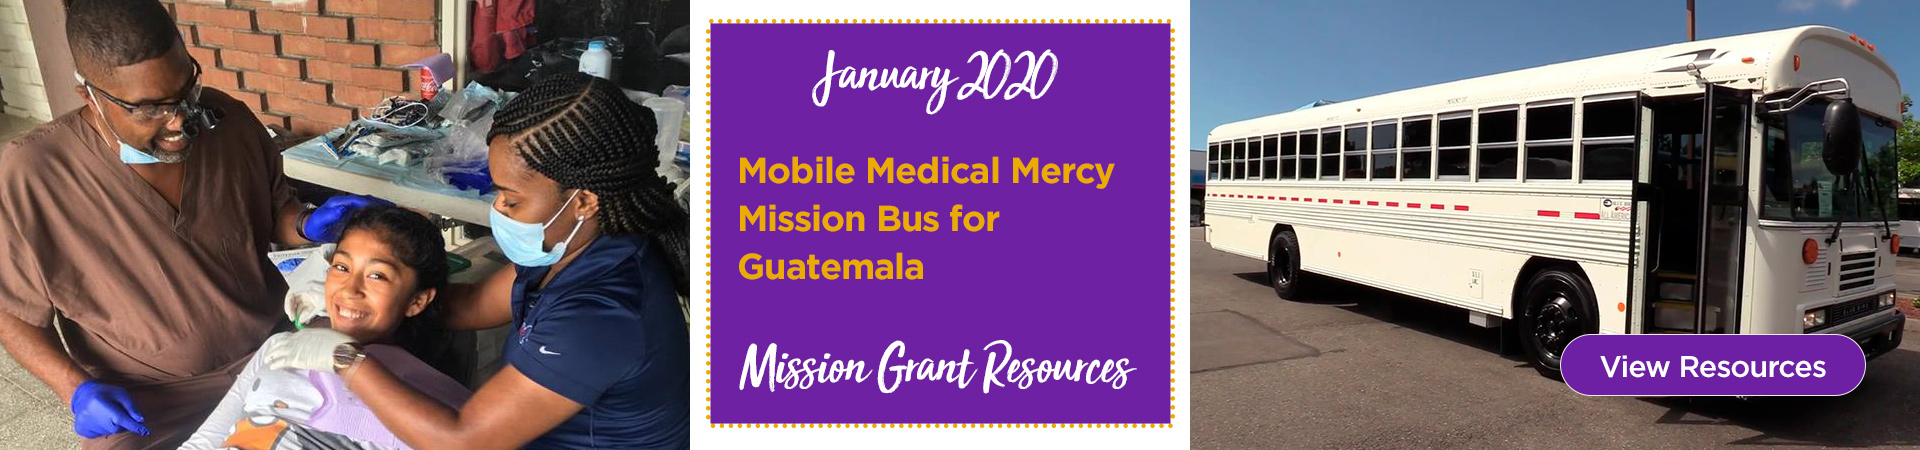 January Mission Grant Resources: Mobile Medical Mercy Mission Bus for Guatemala